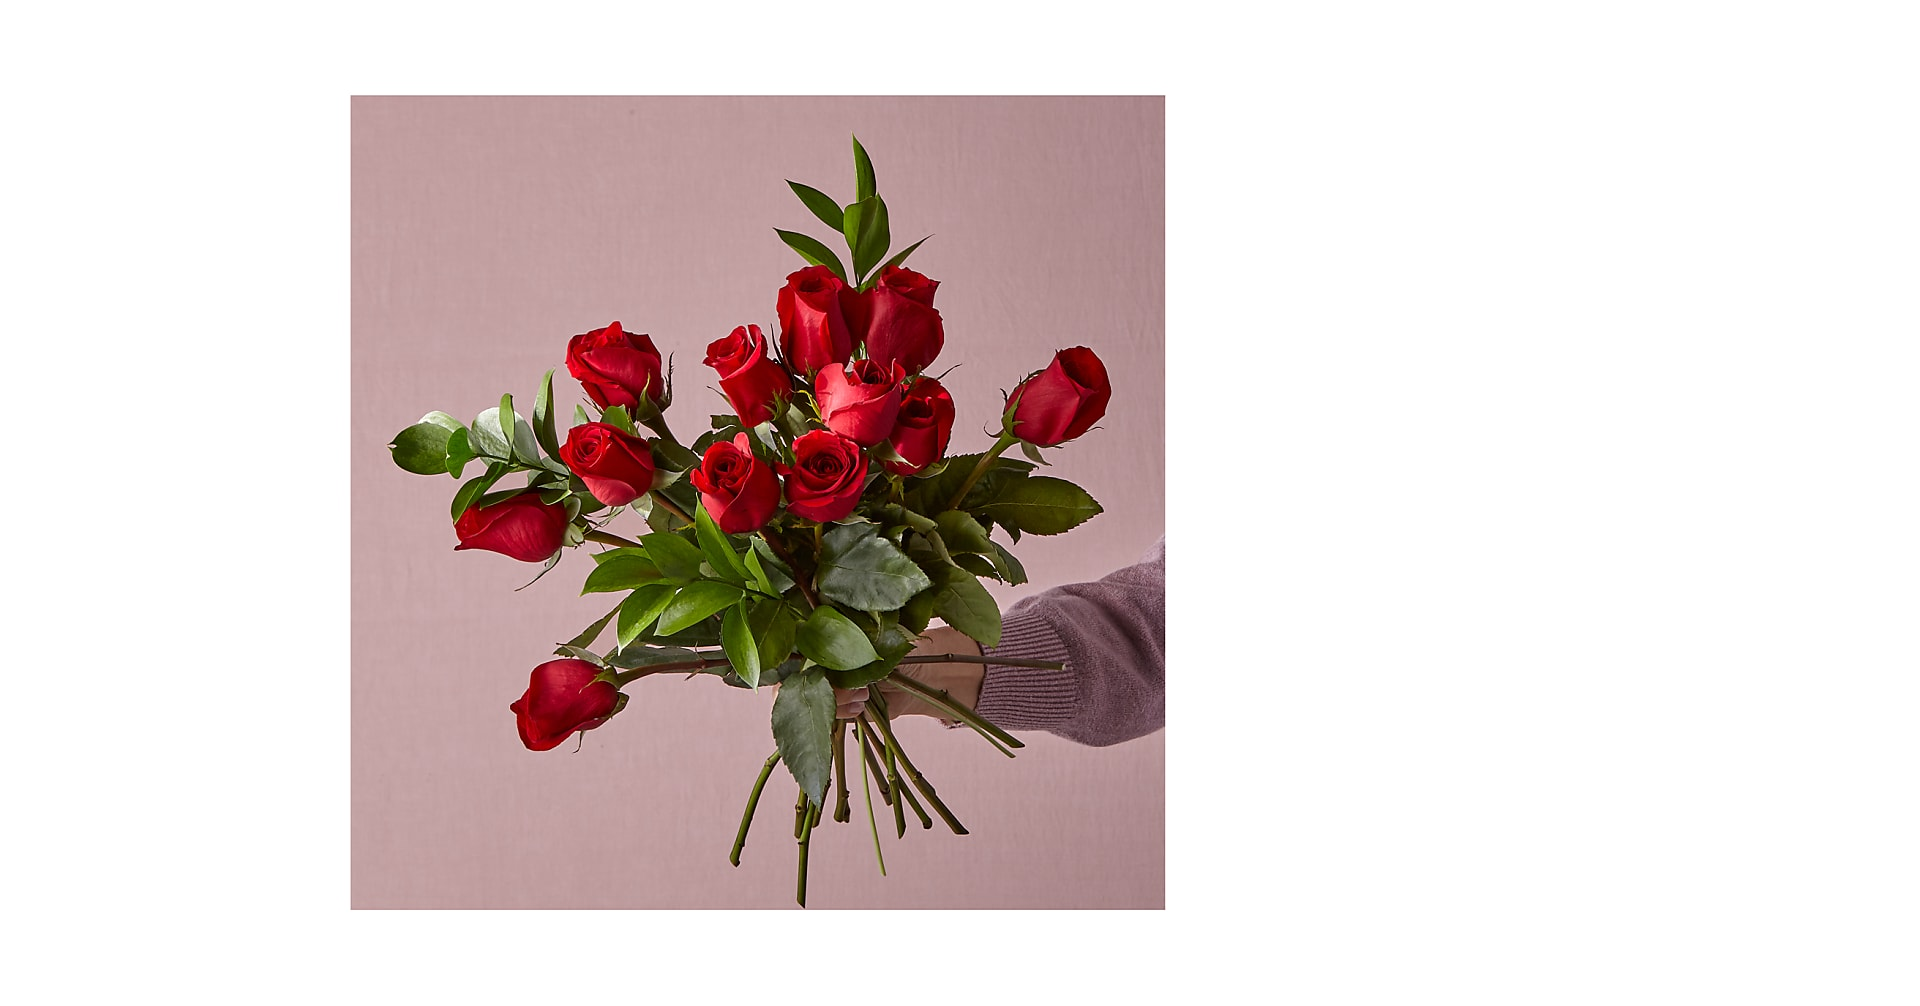 12 Red Roses, No Vase - Image 1 Of 3